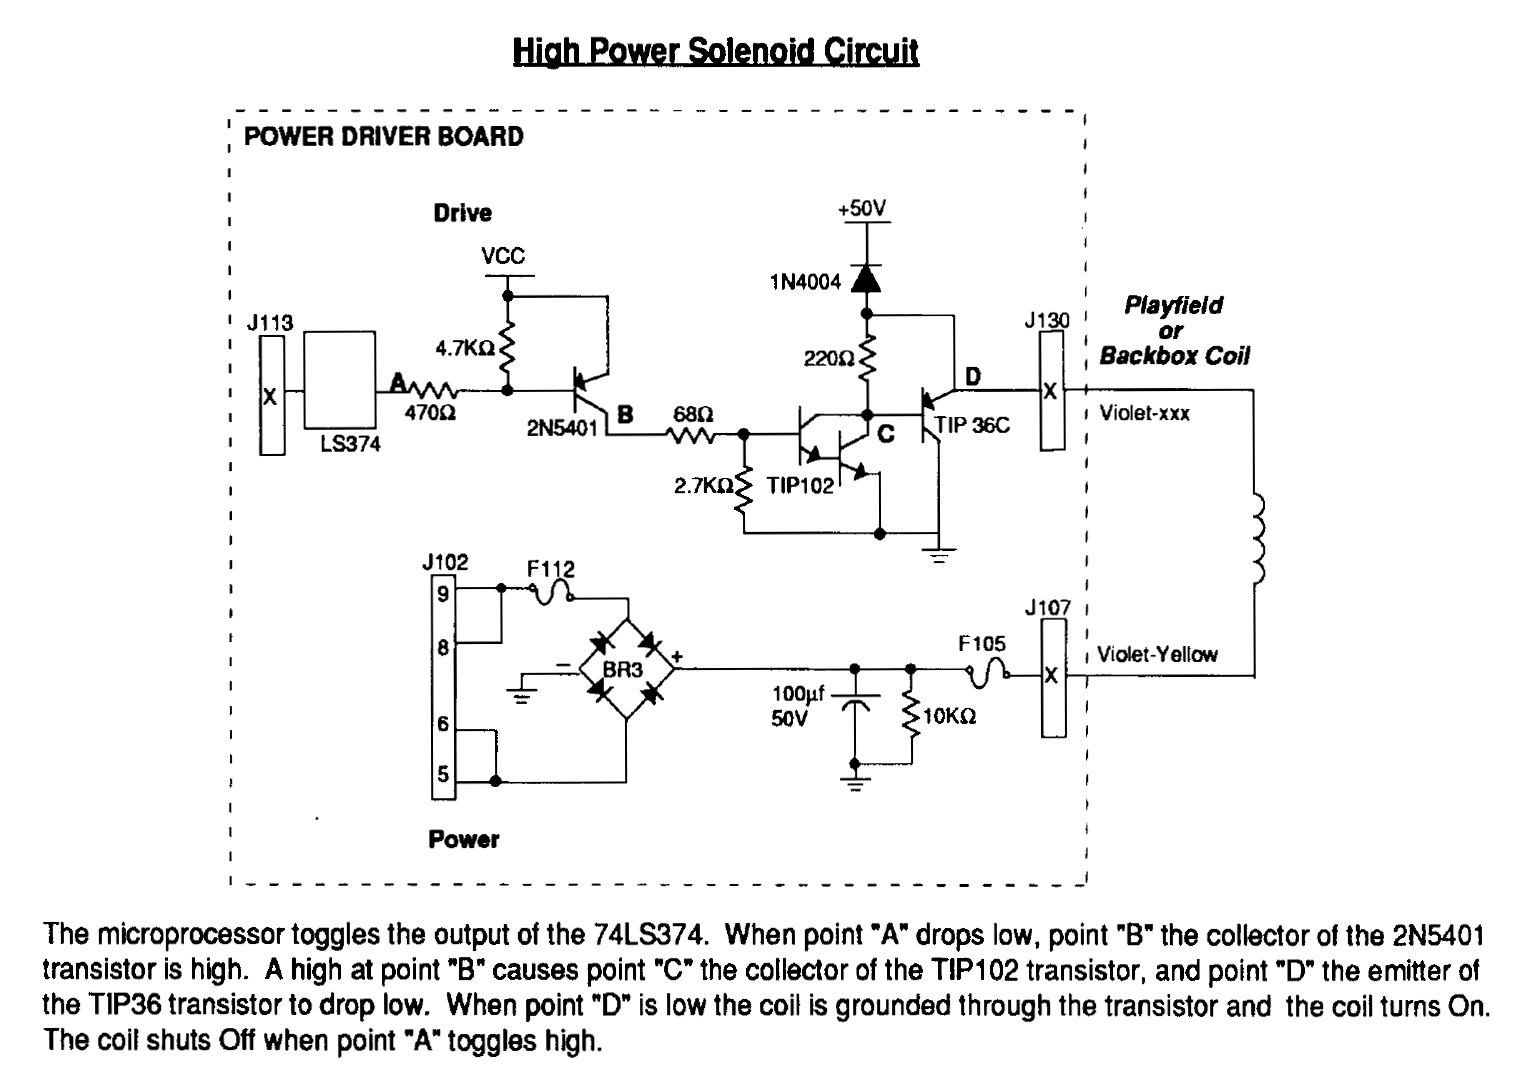 Pinball Chameleons Guide To Diy Machine Construction The Solenoid Schematic Williams High Power Circuit 50v Flows Directly Playfield Coil Making Live And From A Tip36c Pnp